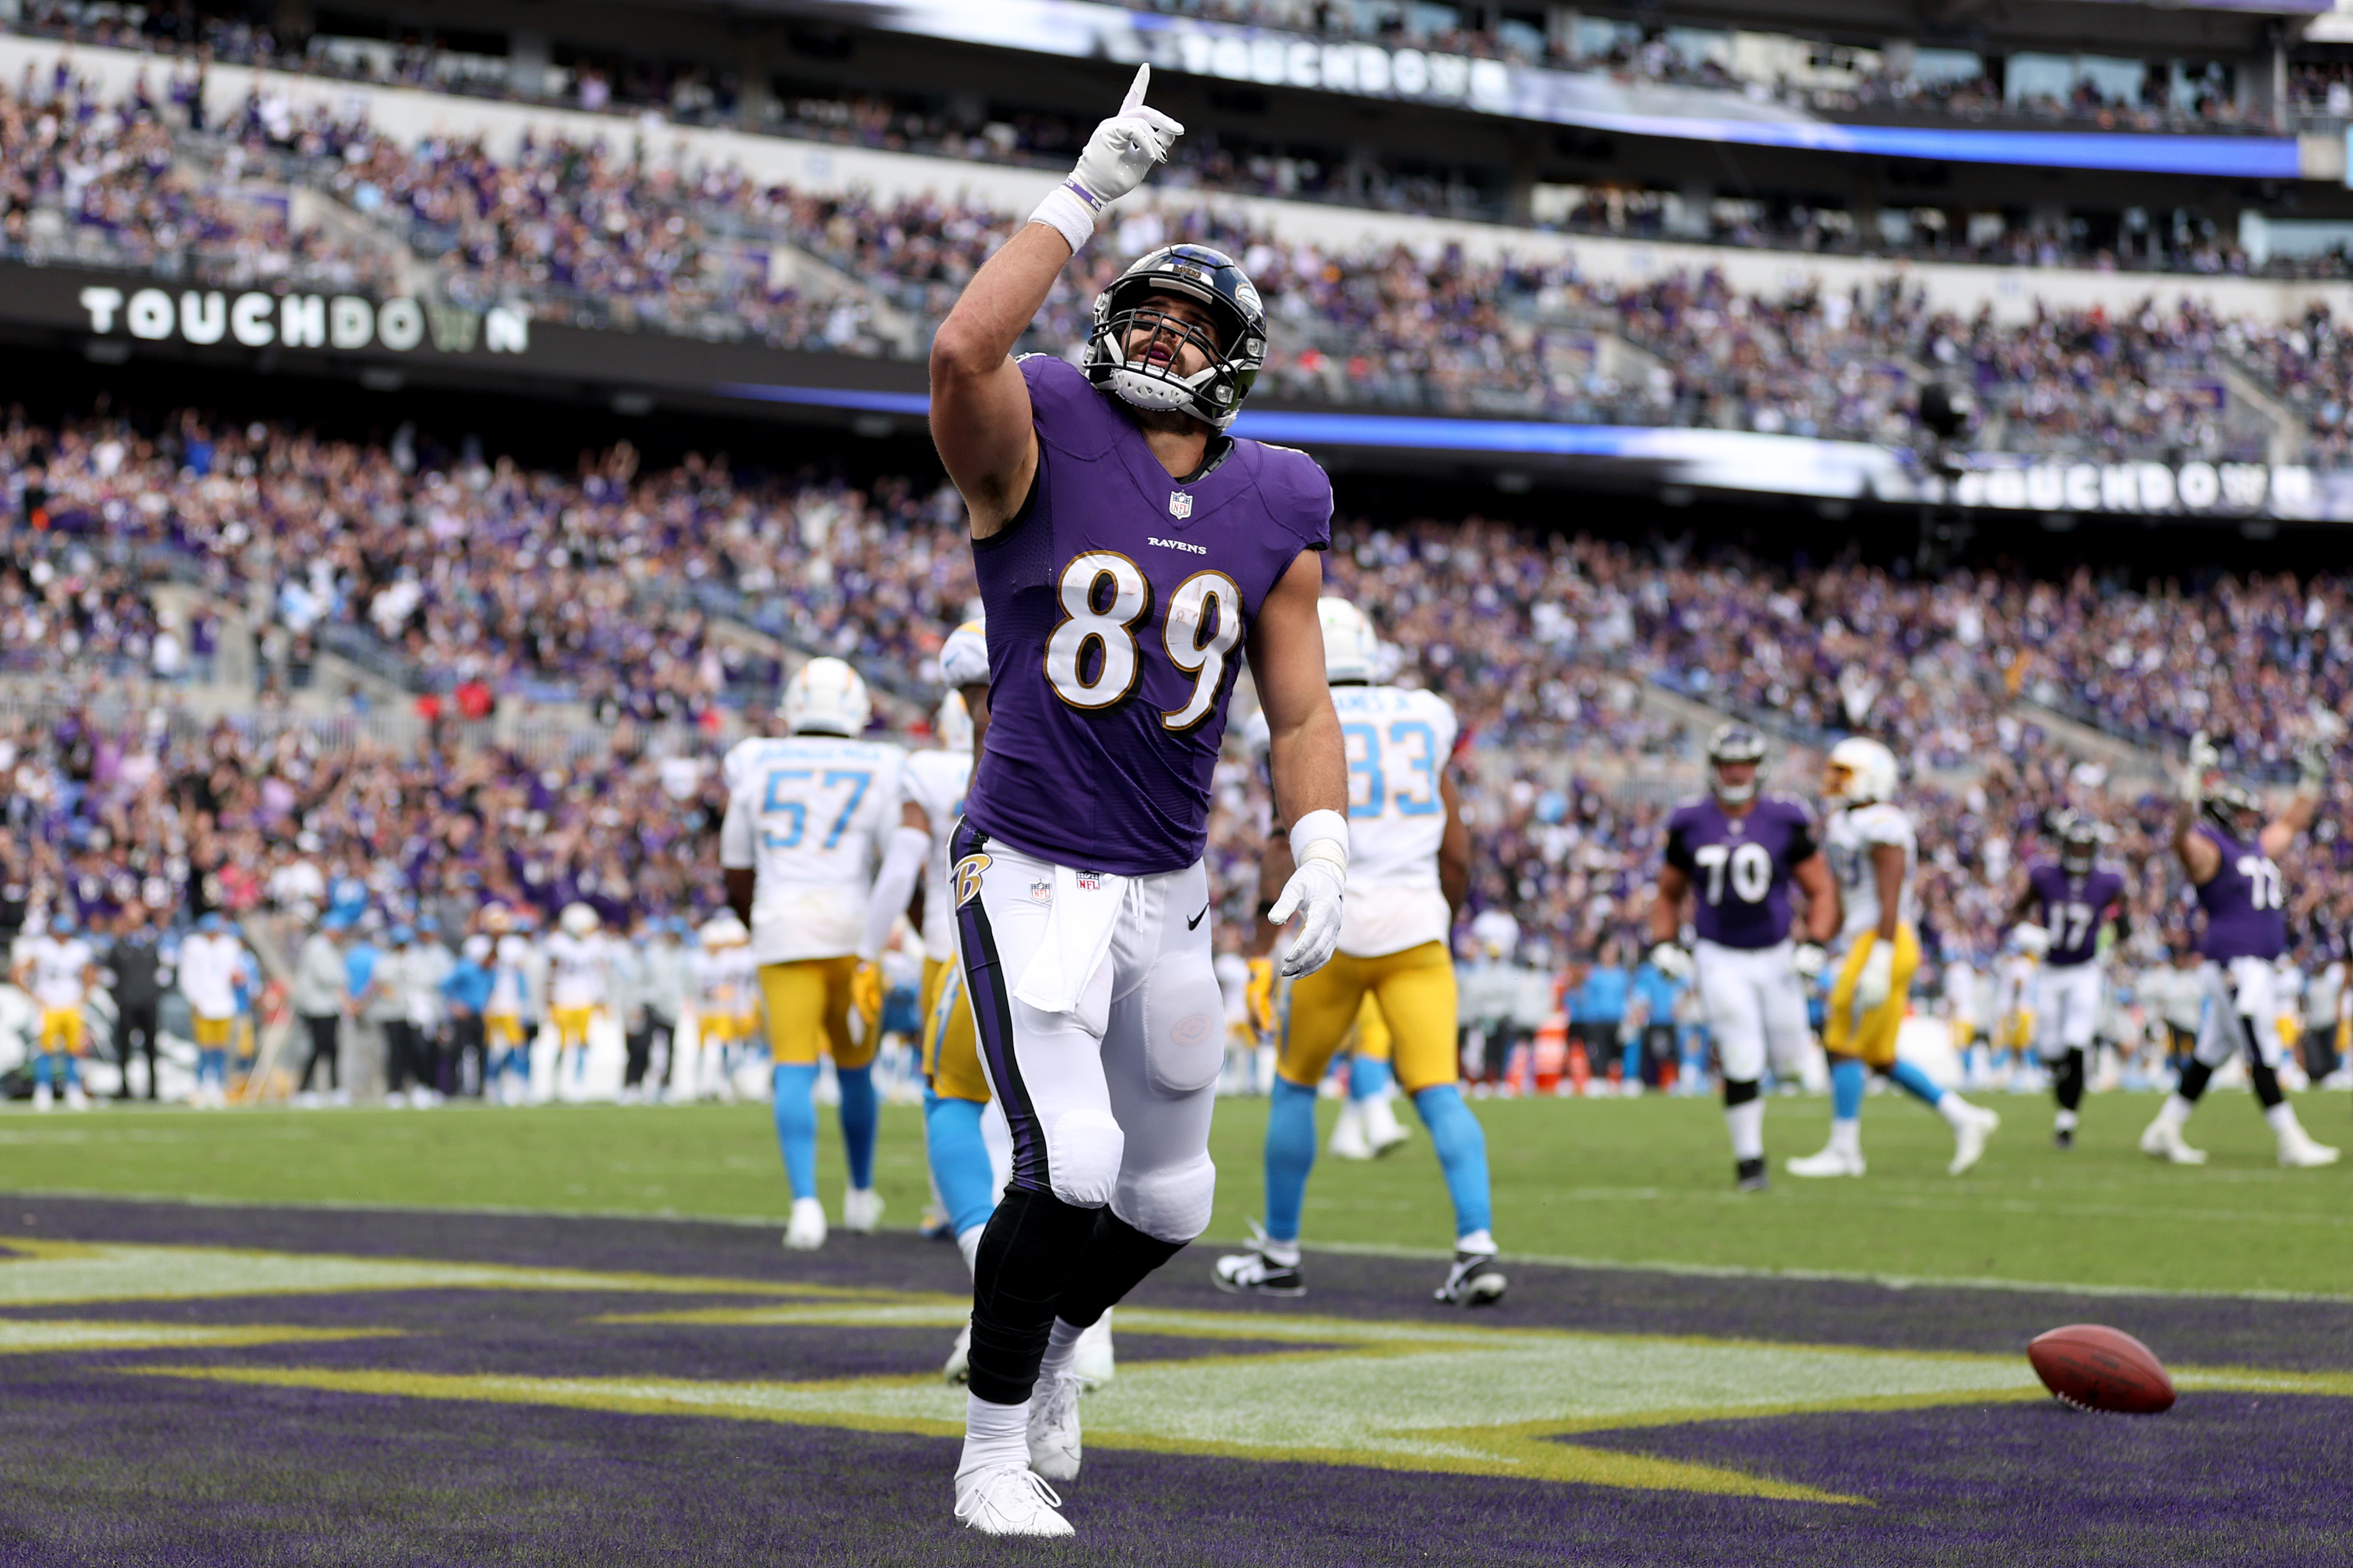 Mark Andrews #89 of the Baltimore Ravens celebrates a touchdown reception during the third quarter against the Los Angeles Chargers at M&T Bank Stadium on October 17, 2021 in Baltimore, Maryland.